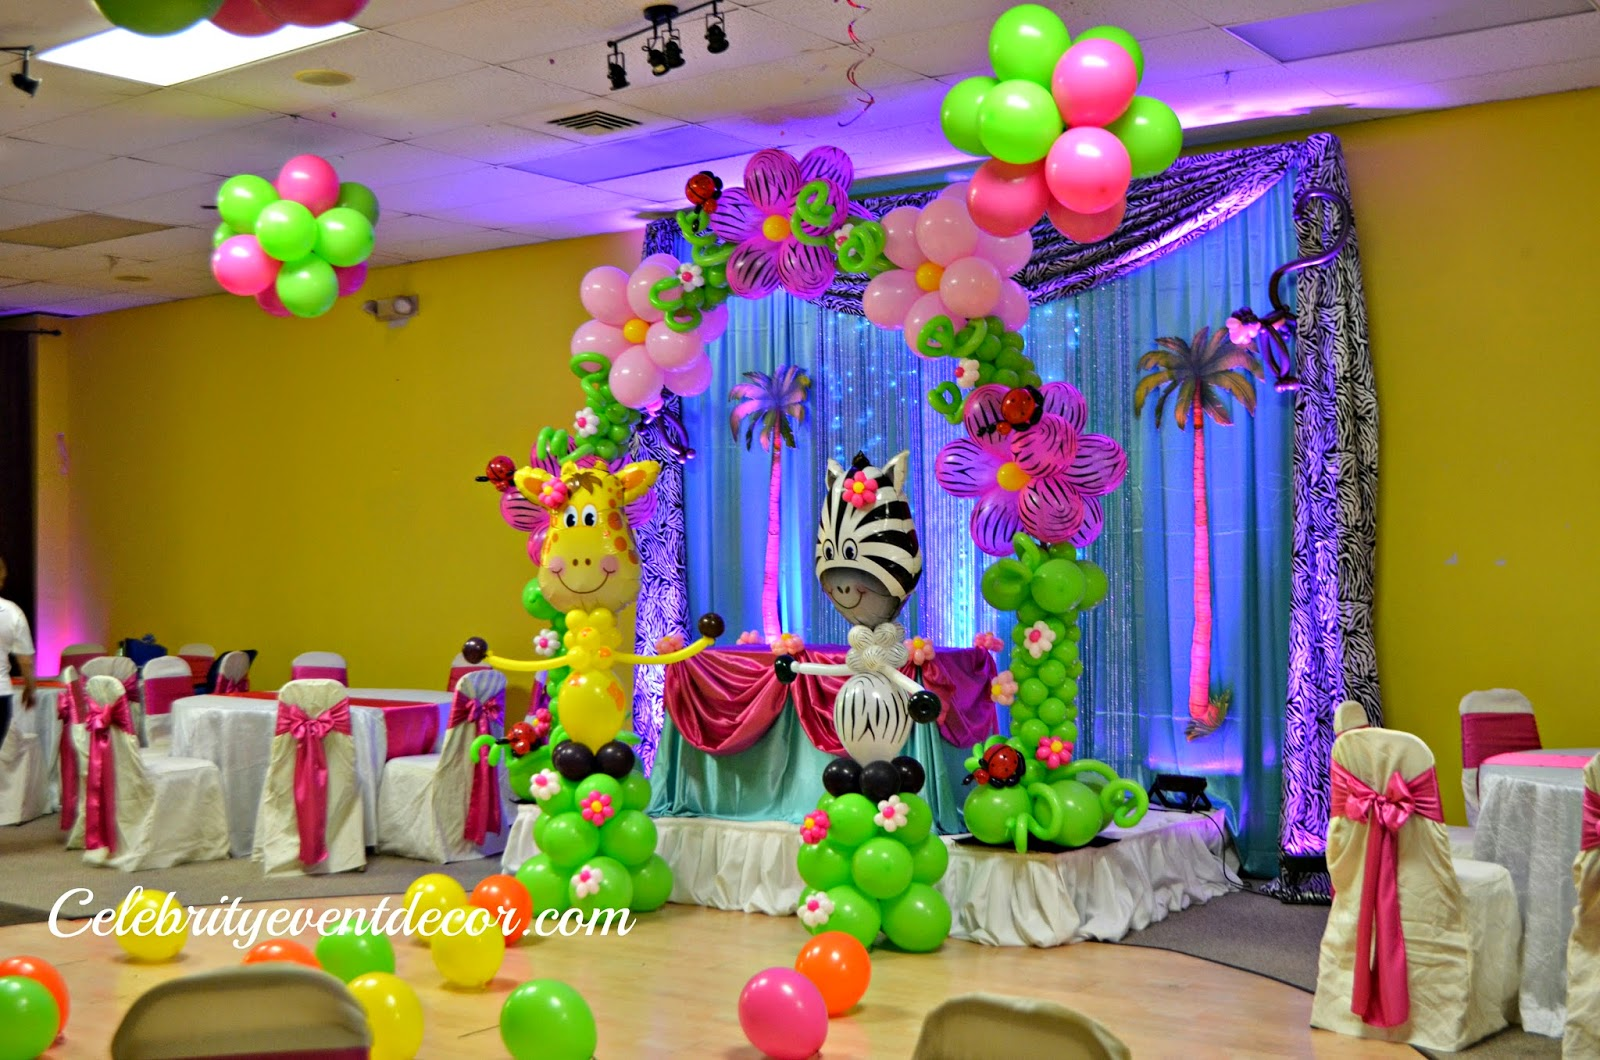 Celebrity Event Decor Banquet Hall Llc Salsuba Gallery